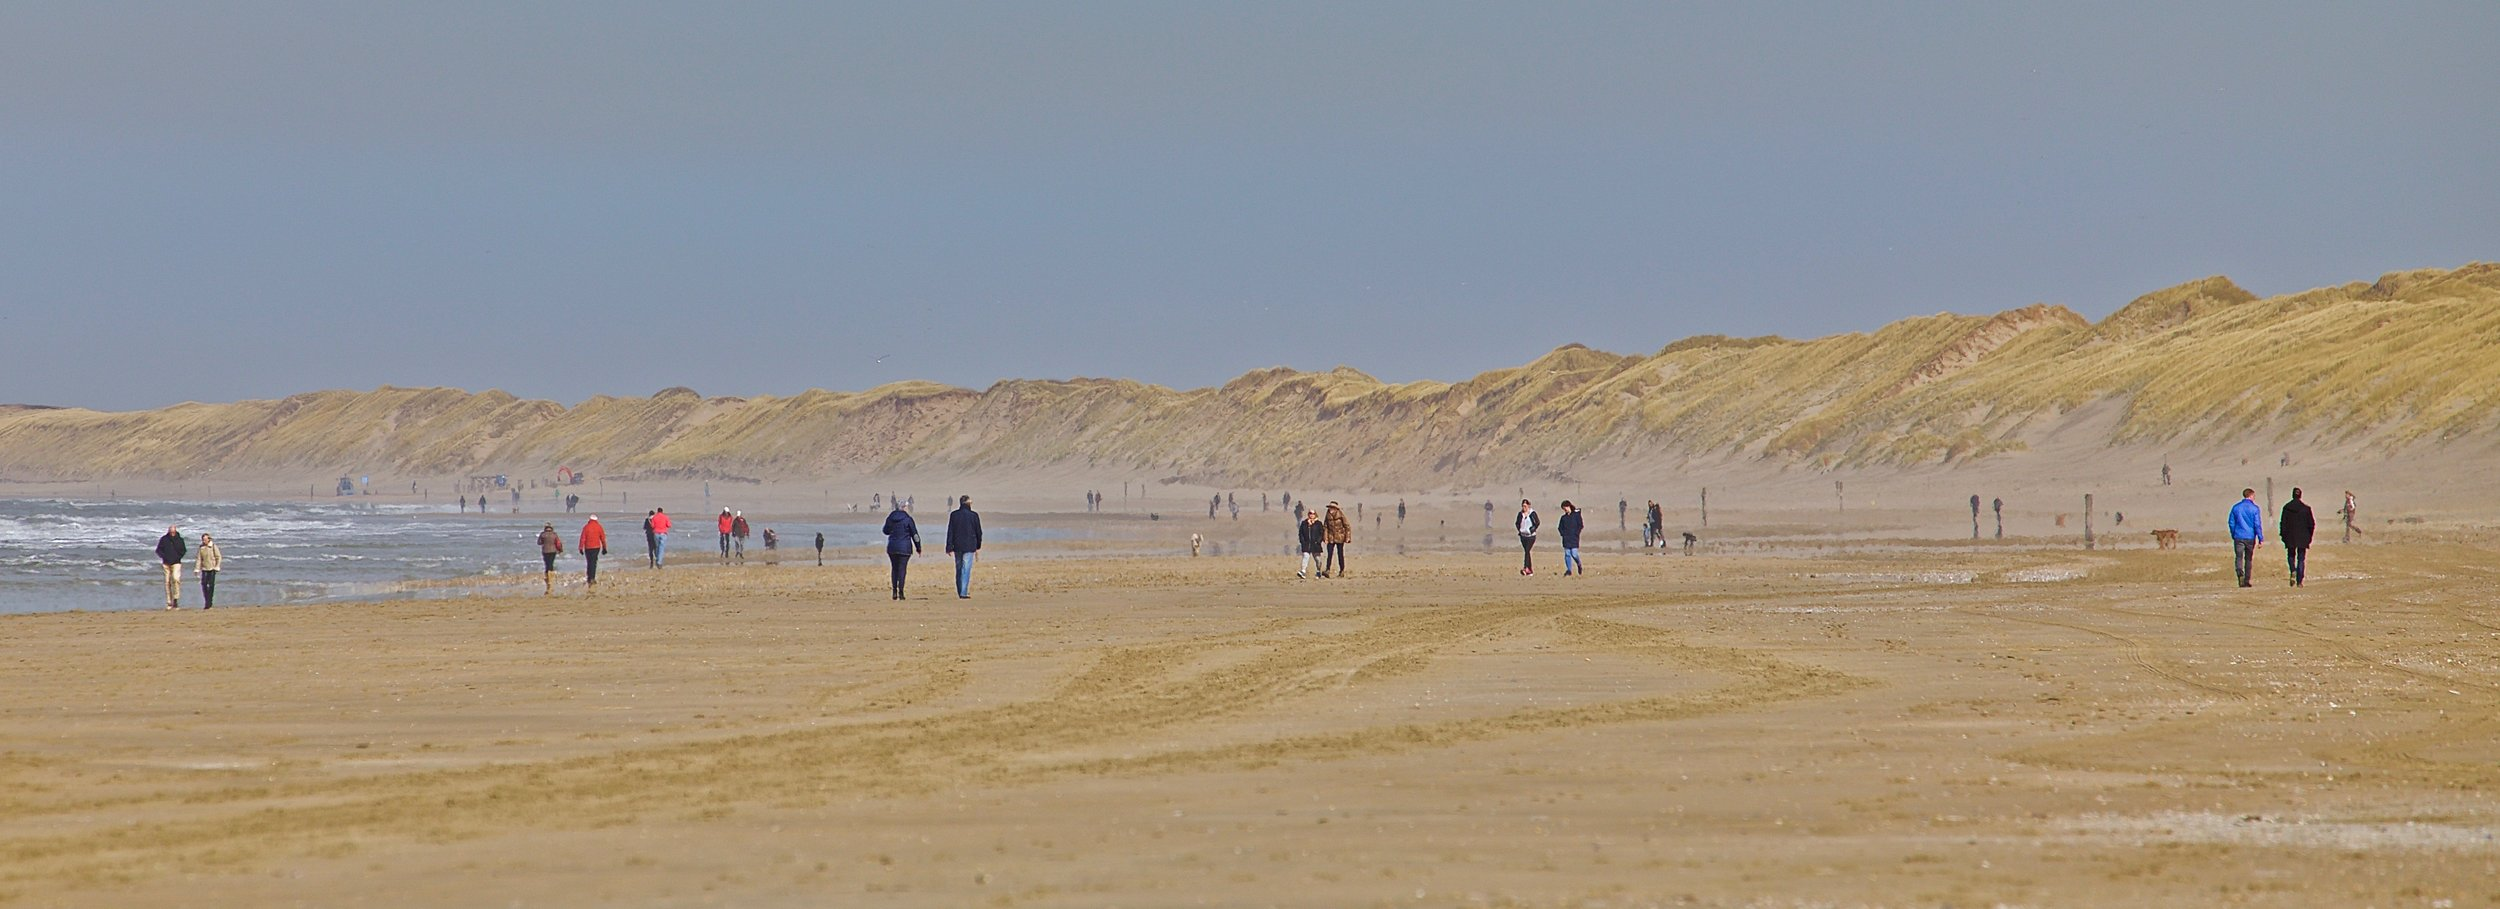 Wijk aan Zee Beach, The Netherlands